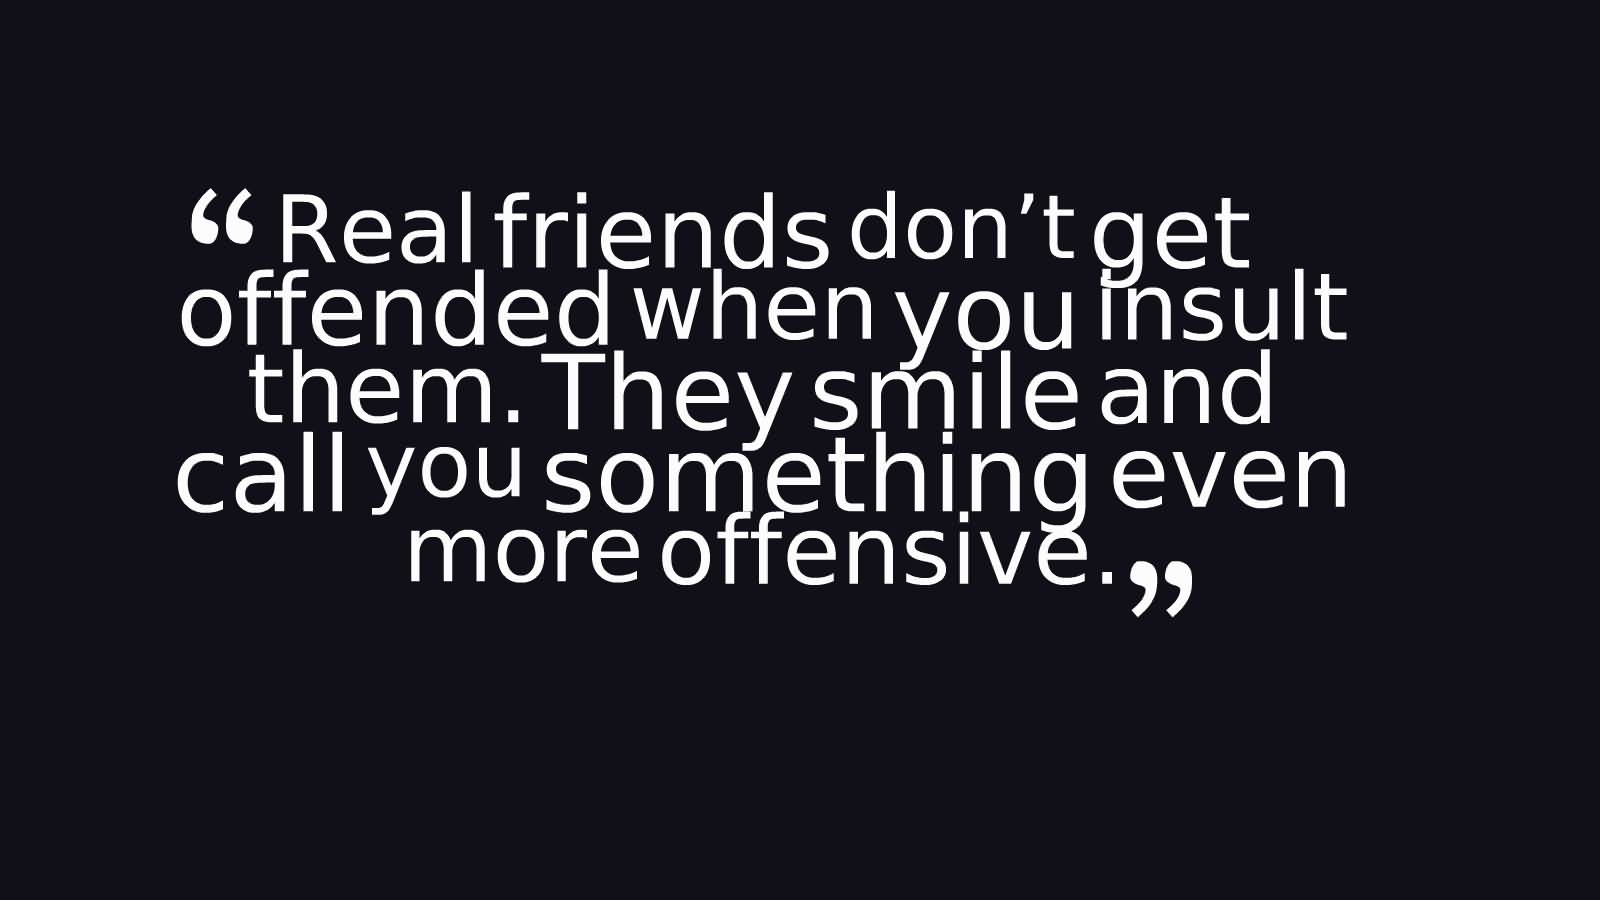 Friendship Quotes And Friendship Sayings Images About Real Friend